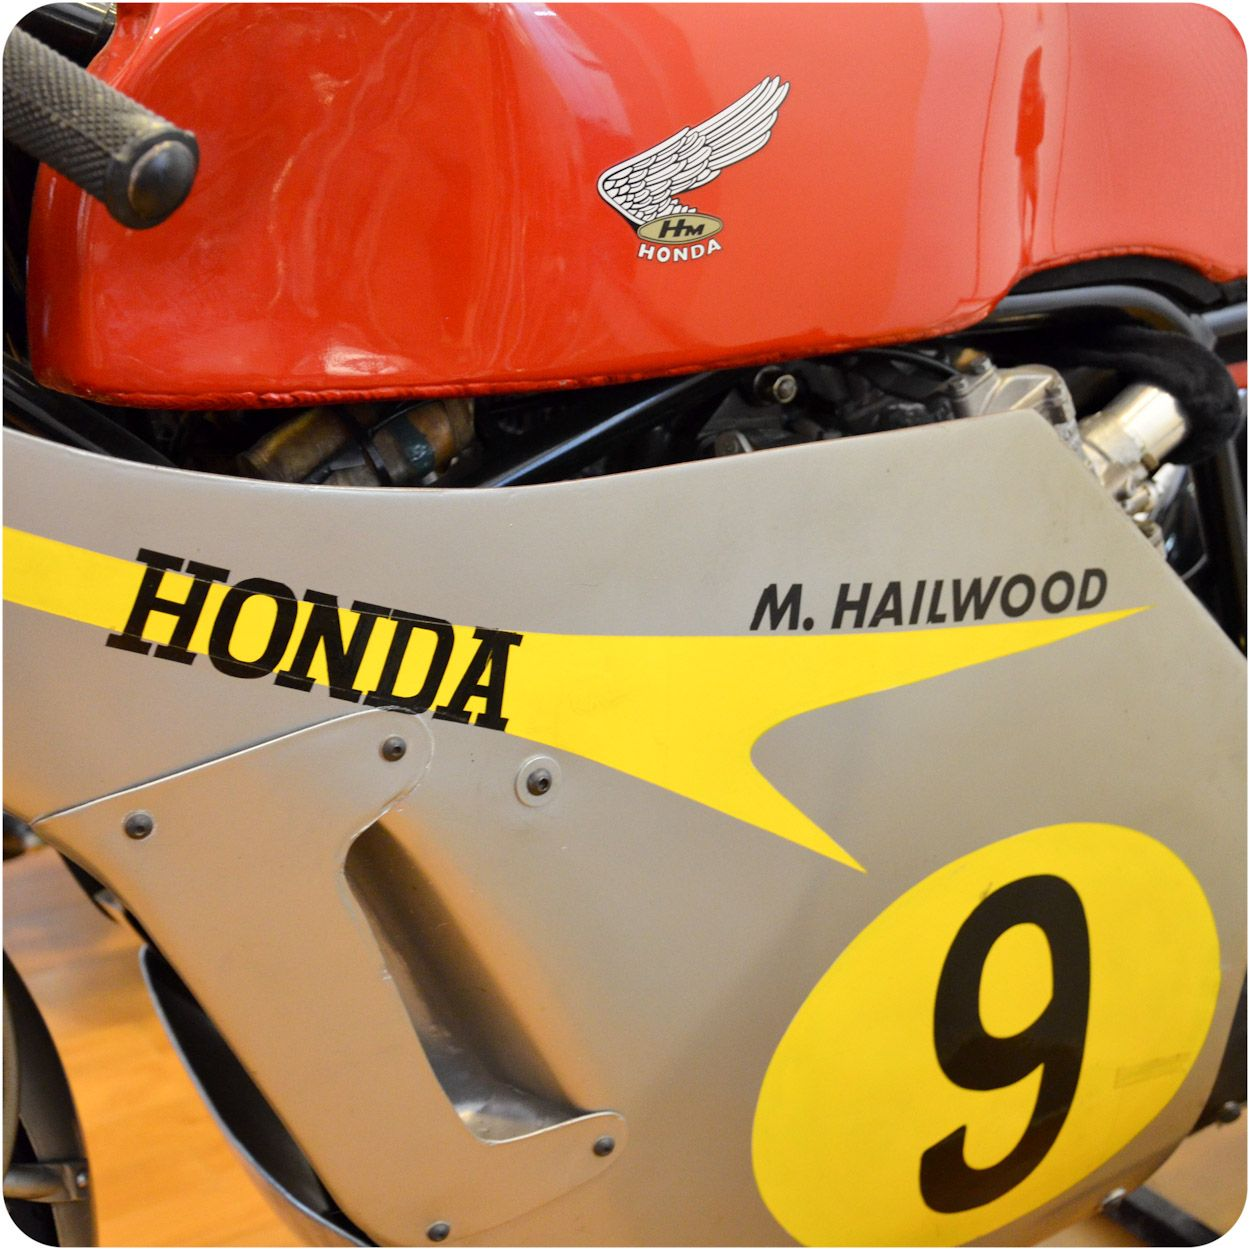 1966 Honda RC181 500cc works racer ridden by Mike Hailwood seen at Solvang Vintage Motorcycle Museum